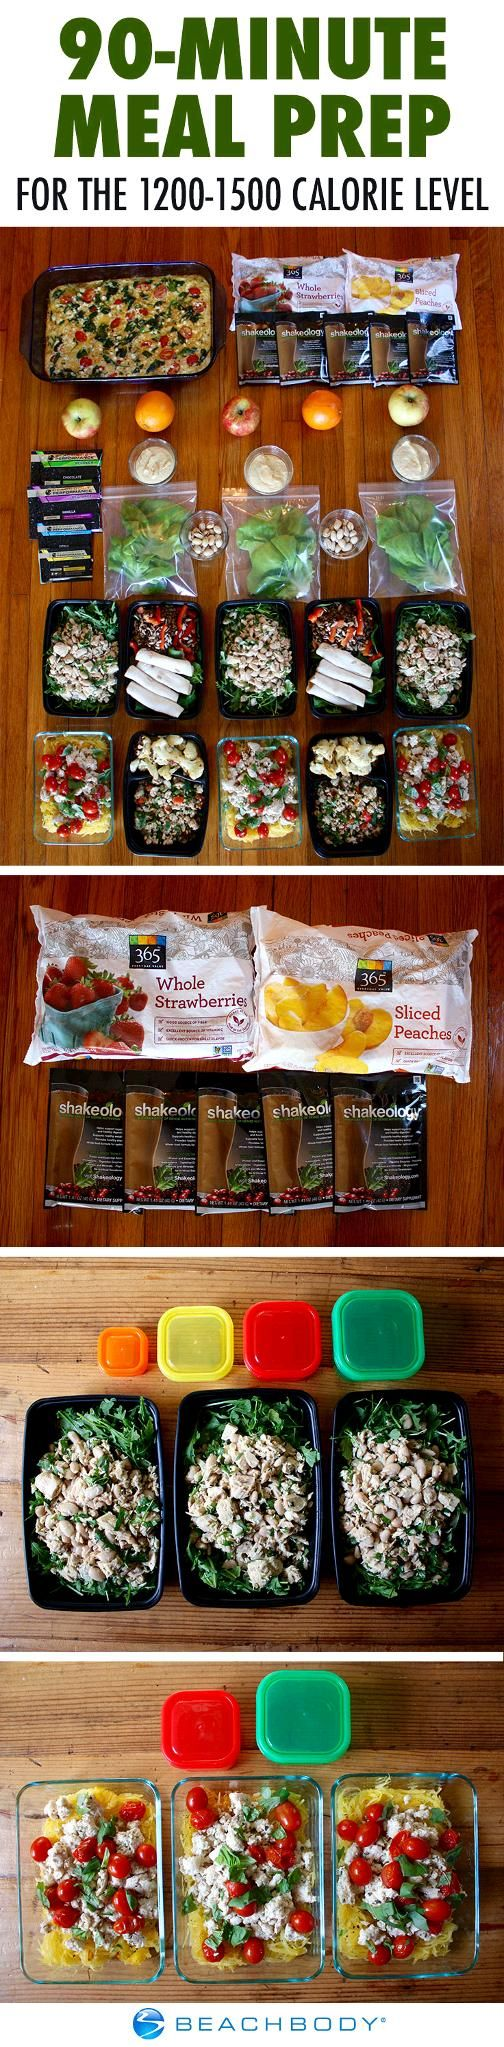 No time? No problem! Prep all your meals for the week in just 90 minutes or less with this meal prep plan. // 21 Day Fix // beachbody // beachbody blog